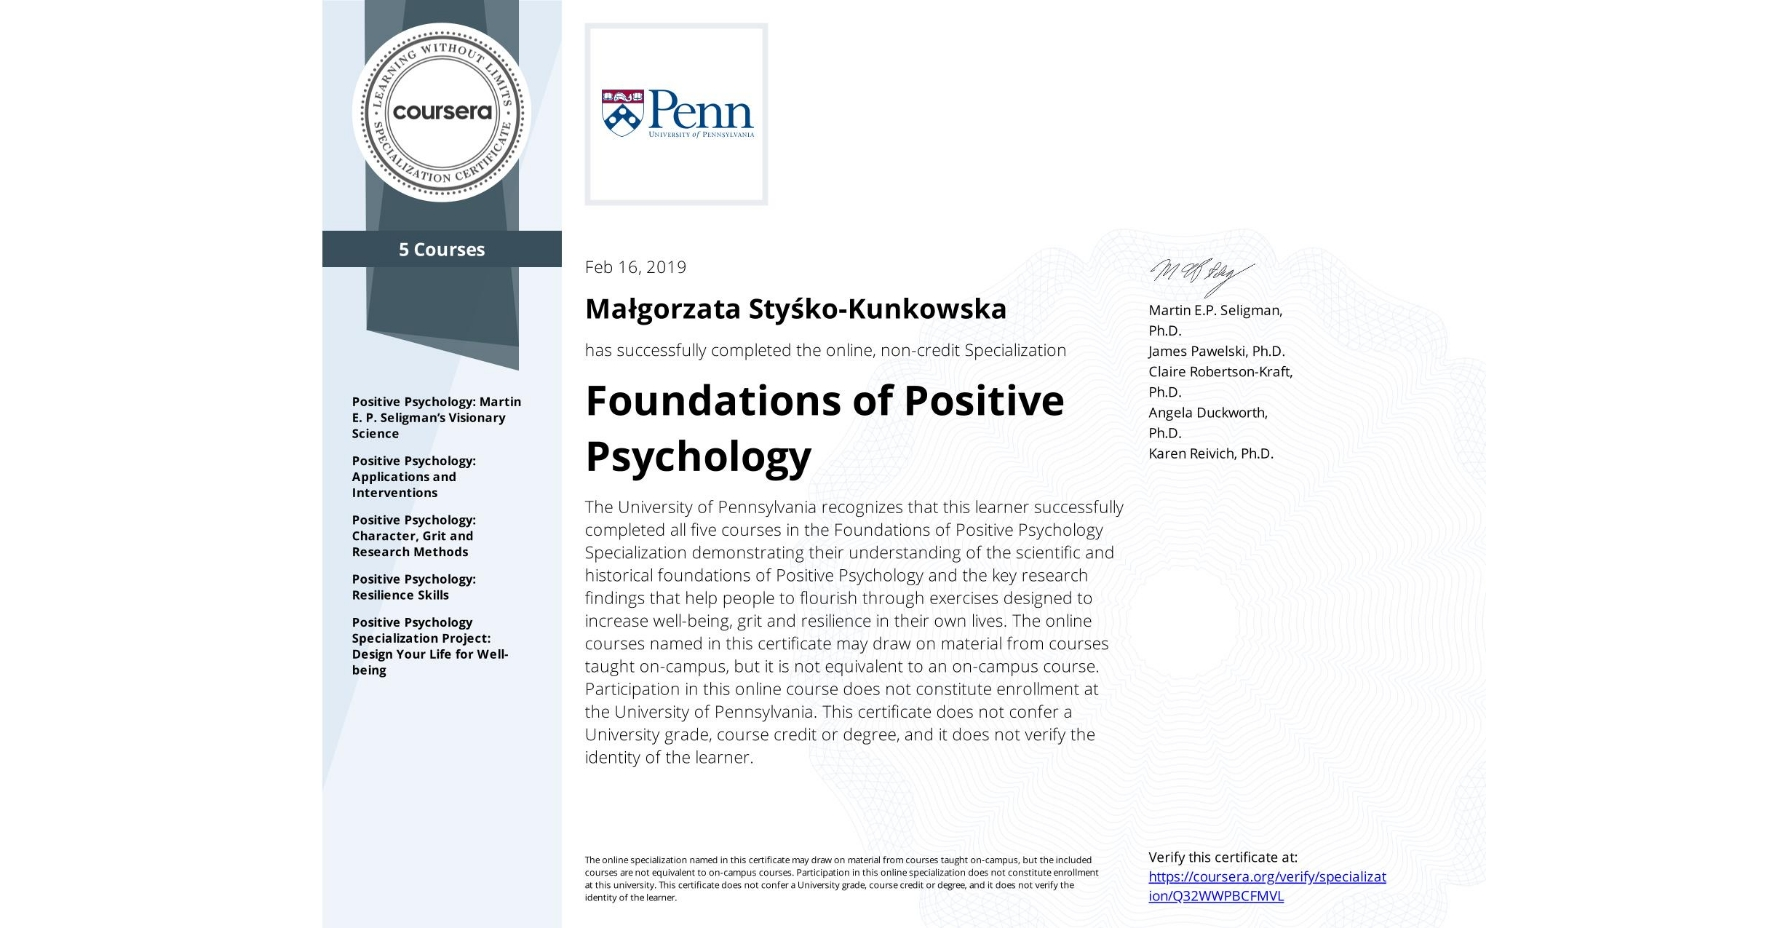 View certificate for Małgorzata Styśko-Kunkowska, Foundations of Positive Psychology , offered through Coursera. The University of Pennsylvania recognizes that this learner successfully completed all five courses in the Foundations of Positive Psychology Specialization demonstrating their understanding of the scientific and historical foundations of Positive Psychology and the key research findings that help people to flourish through exercises designed to increase well-being, grit and resilience in their own lives. The online courses named in this certificate may draw on material from courses taught on-campus, but it is not equivalent to an on-campus course.  Participation in this online course does not constitute enrollment at the University of Pennsylvania. This certificate does not confer a University grade, course credit or degree, and it does not verify the identity of the learner.